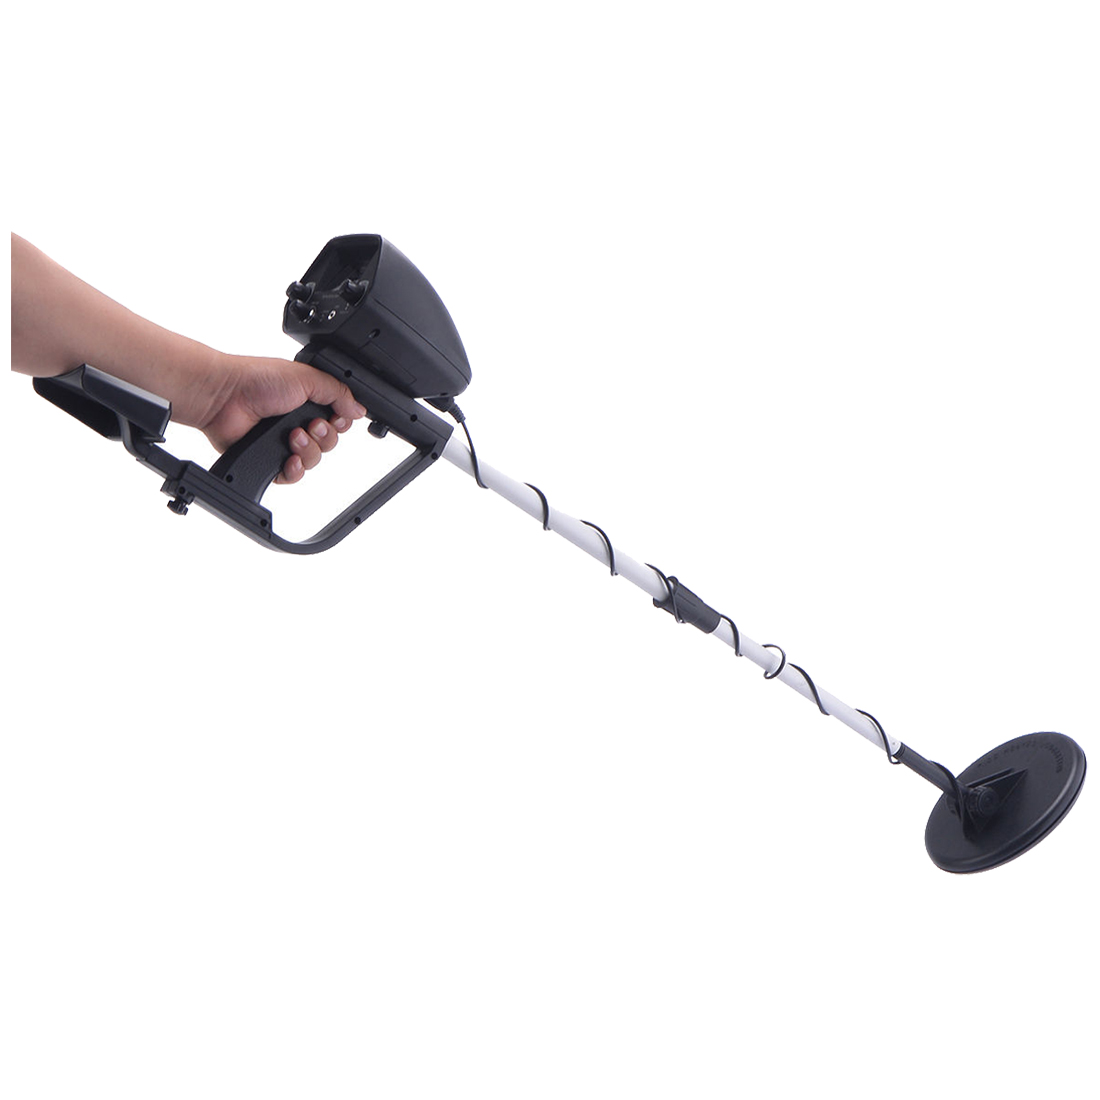 Waterproof Metal Detector Deep Sensitive Search Gold Digger Hunter 6 5 inch MD 4030 Handheld Metal